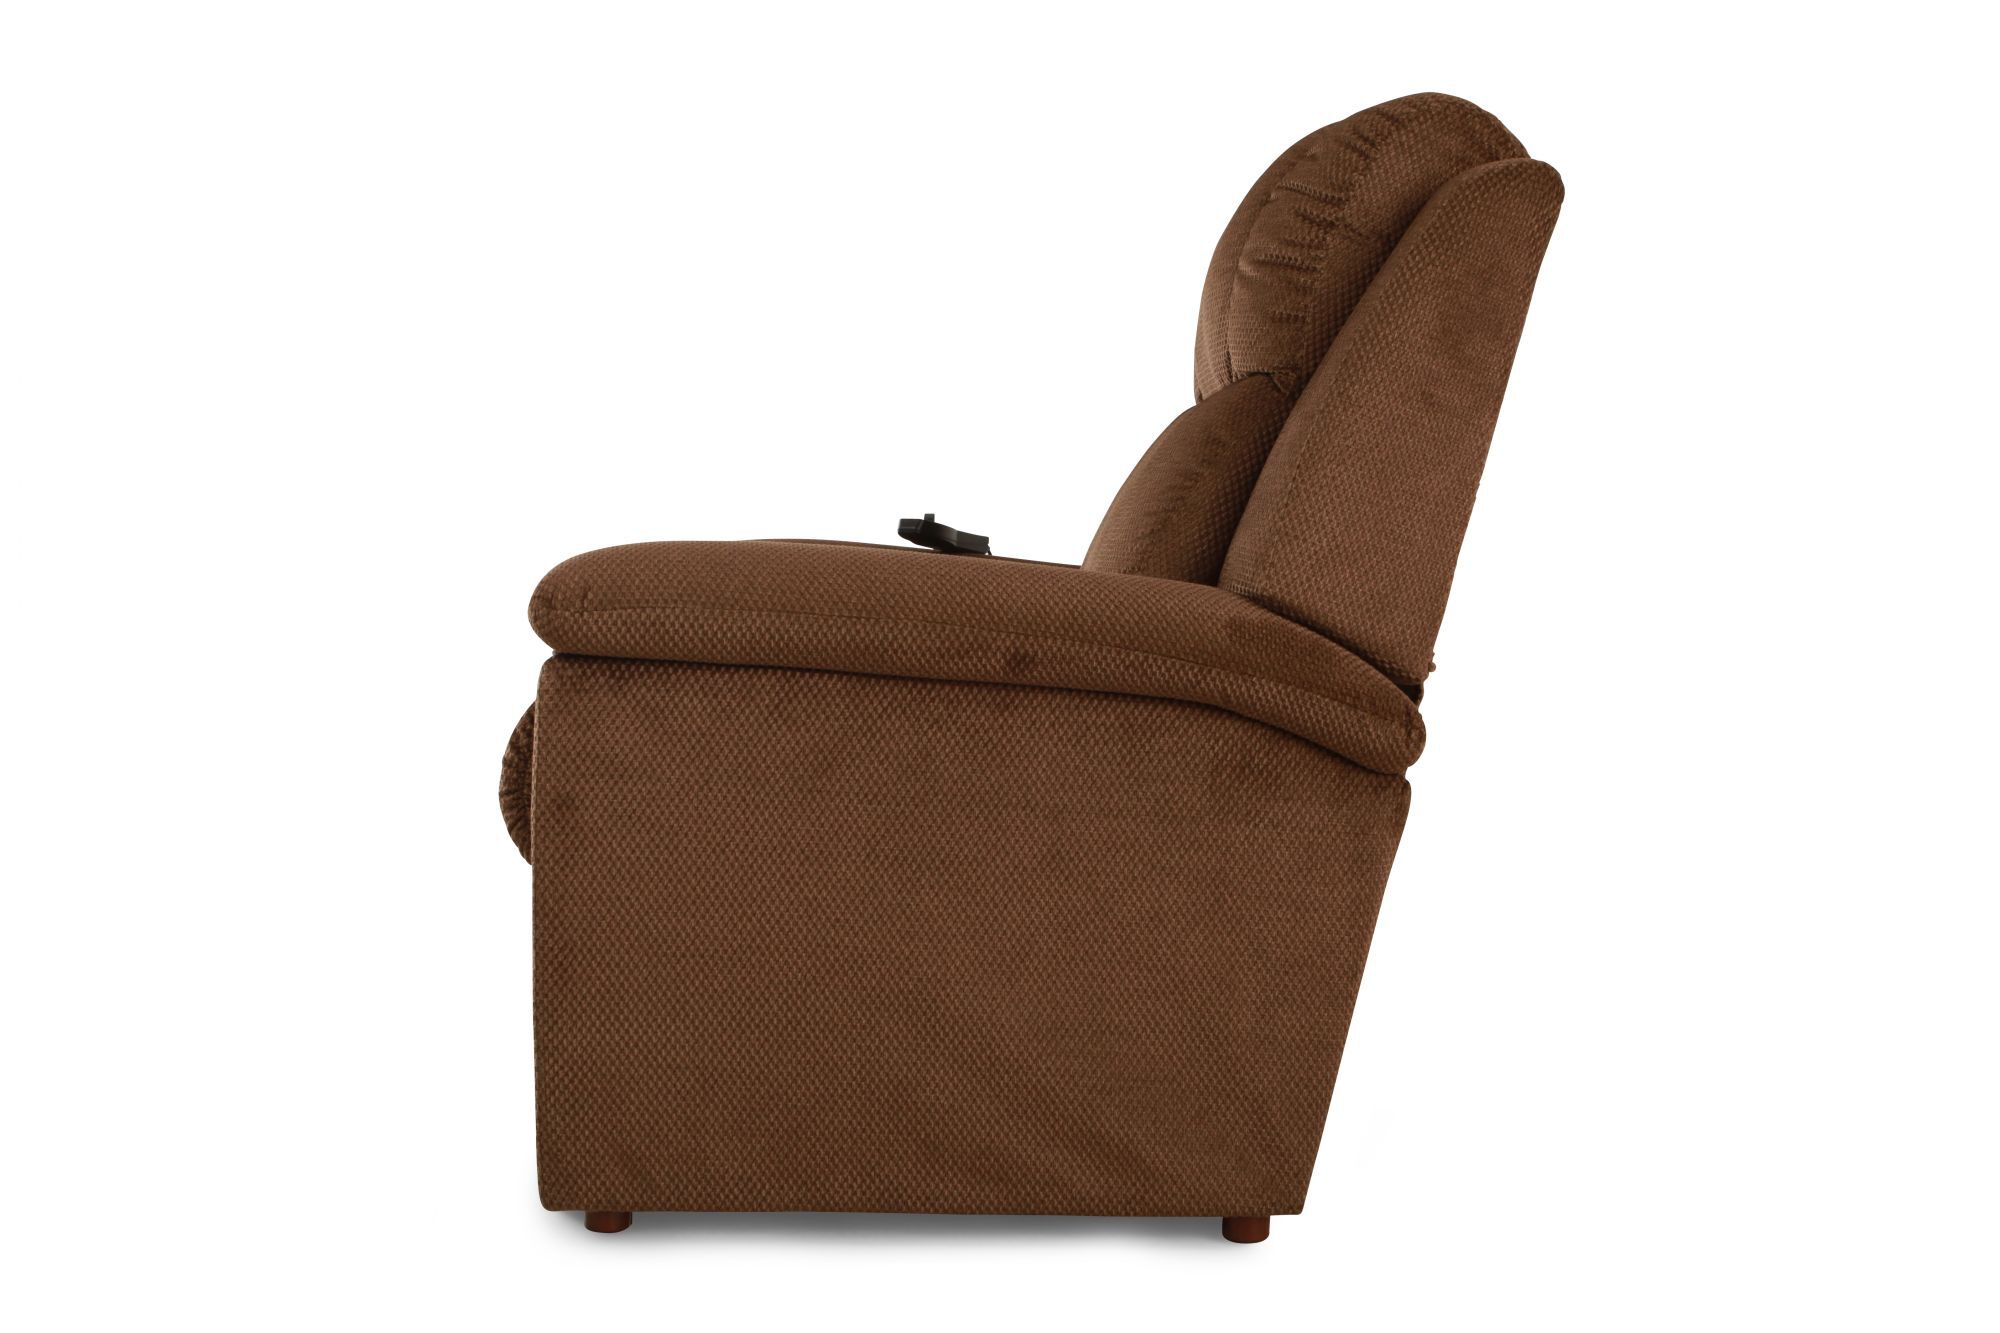 La-Z-Boy Clayton Brown Power Lift Recliner  sc 1 st  Mathis Brothers & La-Z-Boy Clayton Brown Power Lift Recliner | Mathis Brothers Furniture islam-shia.org